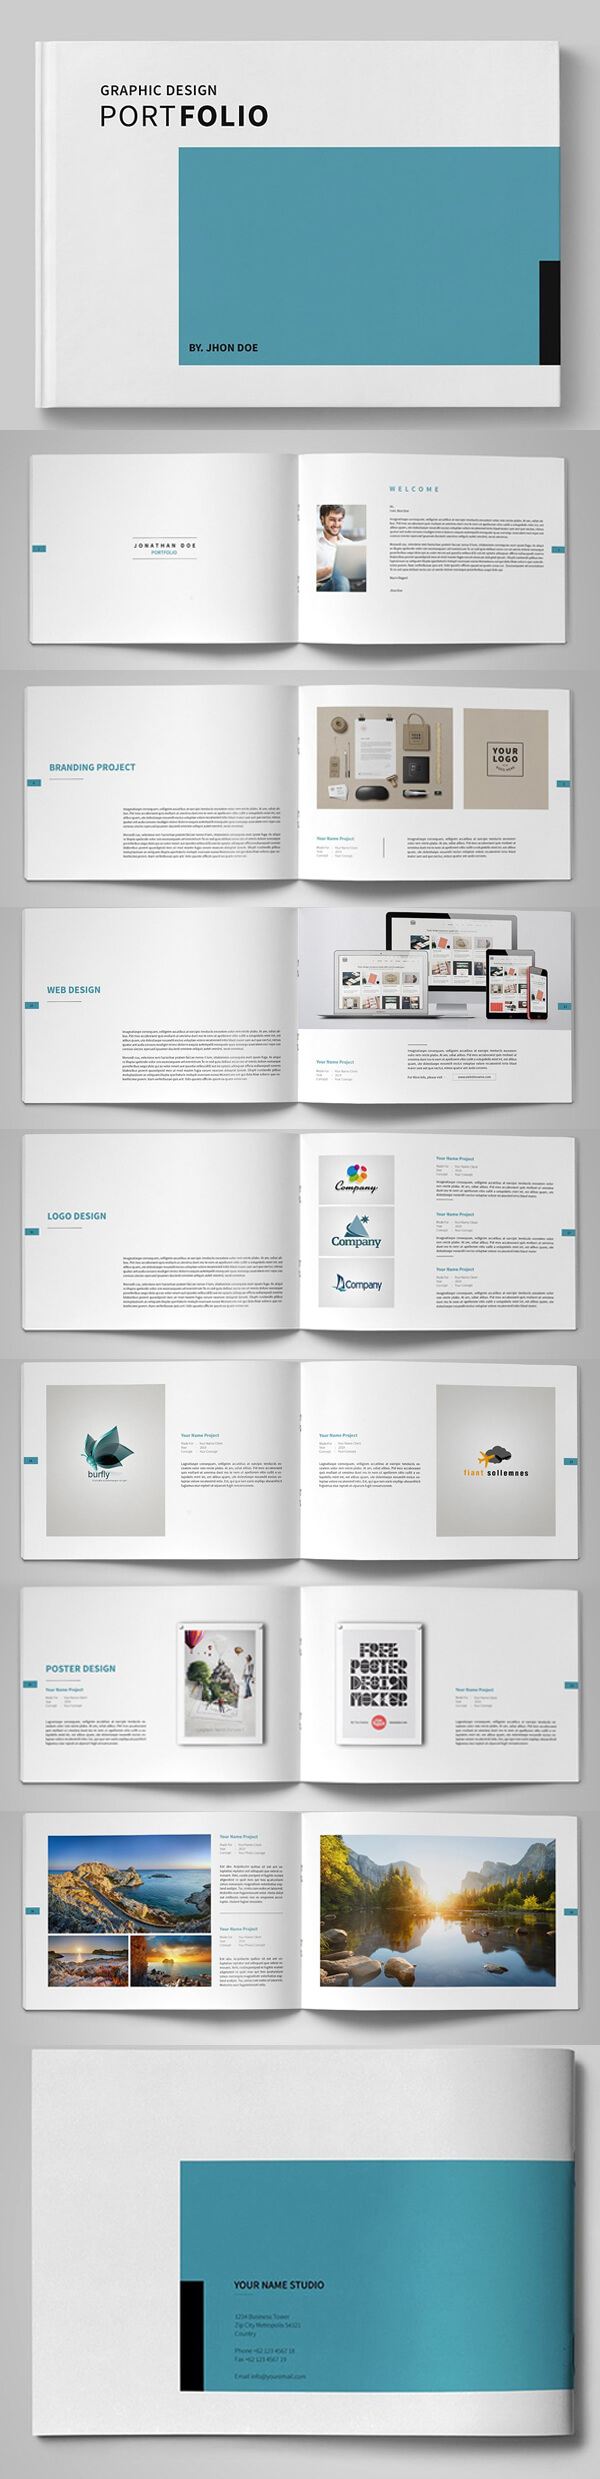 20 New Professional Catalog Brochure Templates | Design Throughout Business Process Catalogue Template